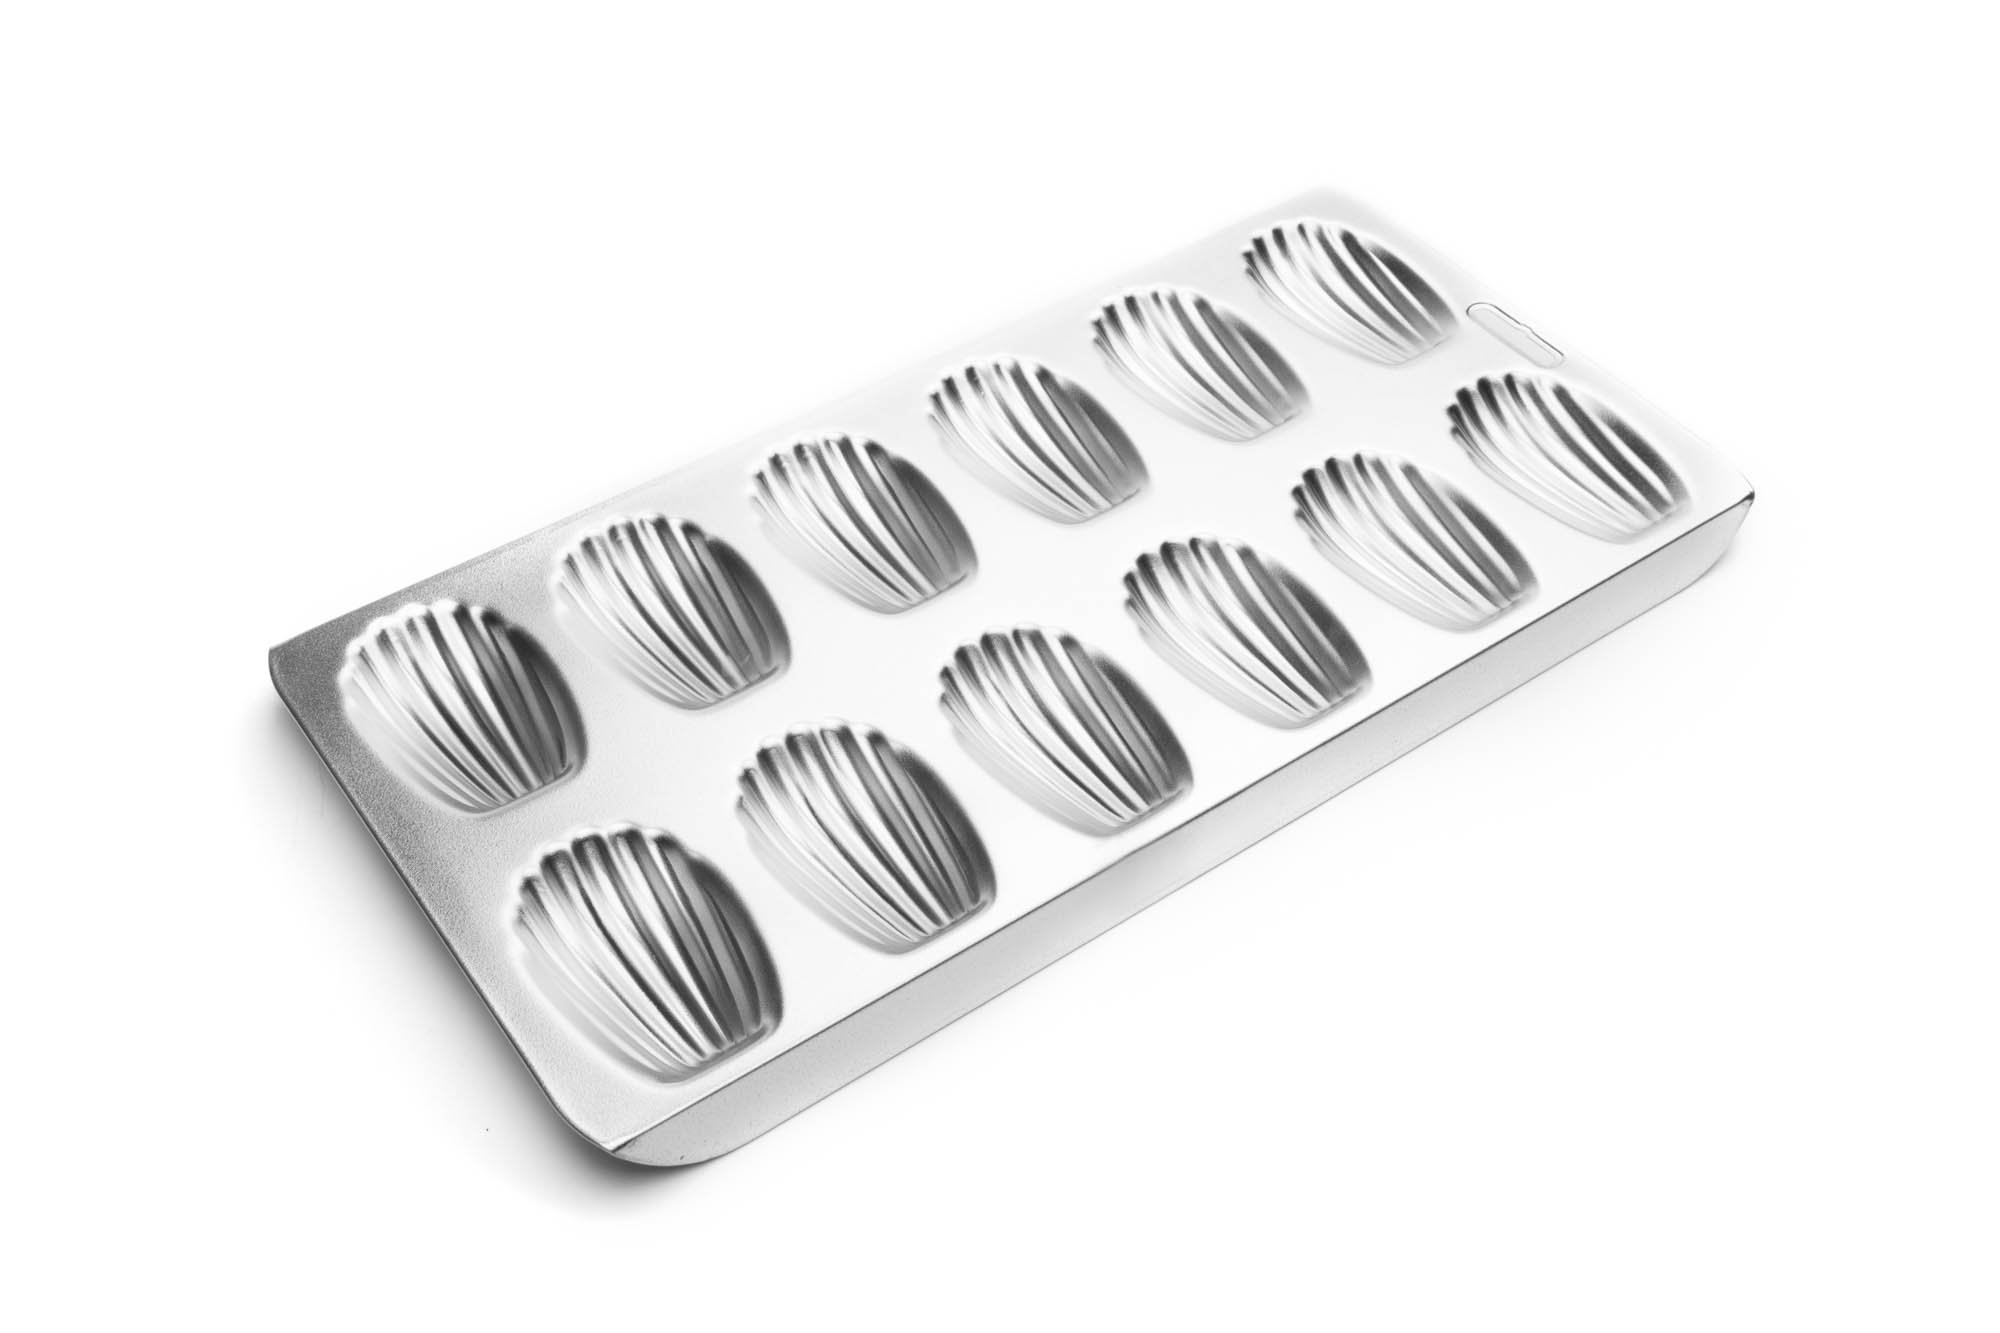 Fox Run 4729 Madeleine Pan, Tin-Plated Steel, 12-Molds